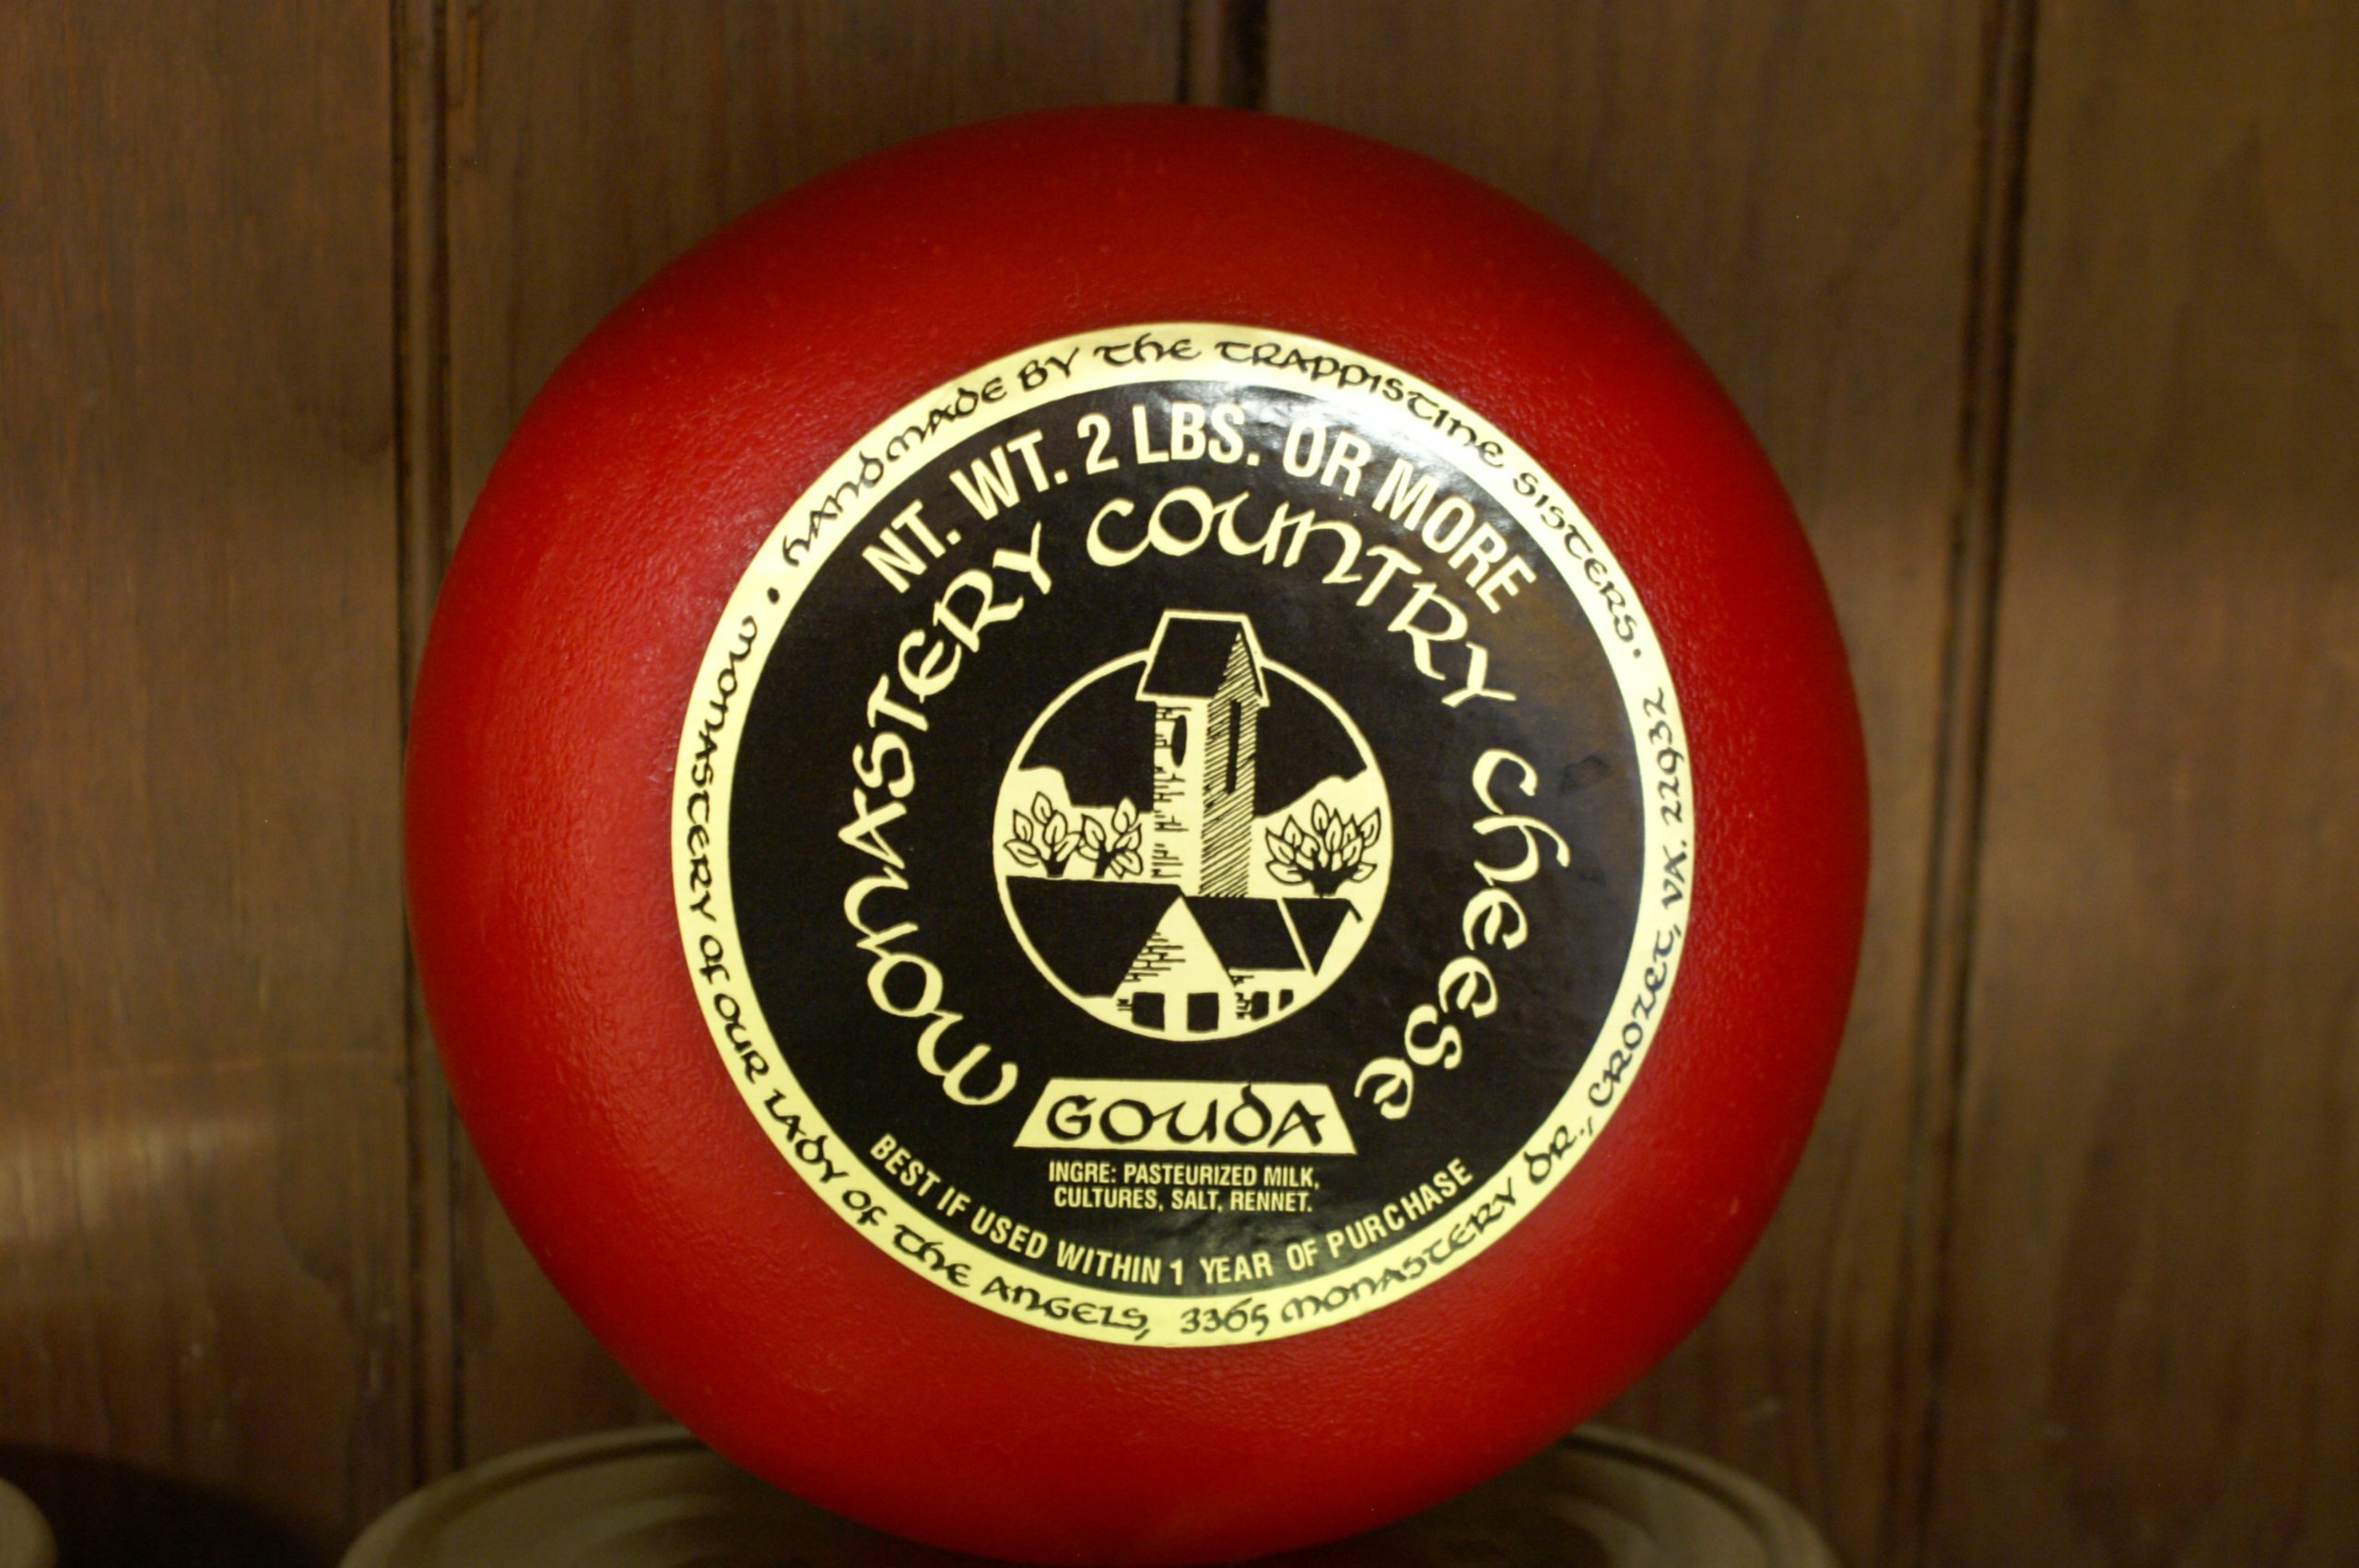 Monastery Country Gouda Cheese -All Natural Freshly Handmade 2 Pound Wheel in Wax Using Fresh on the Farm Milk for Perfect Taste & Texture--Semi-soft, Sweet & Buttery